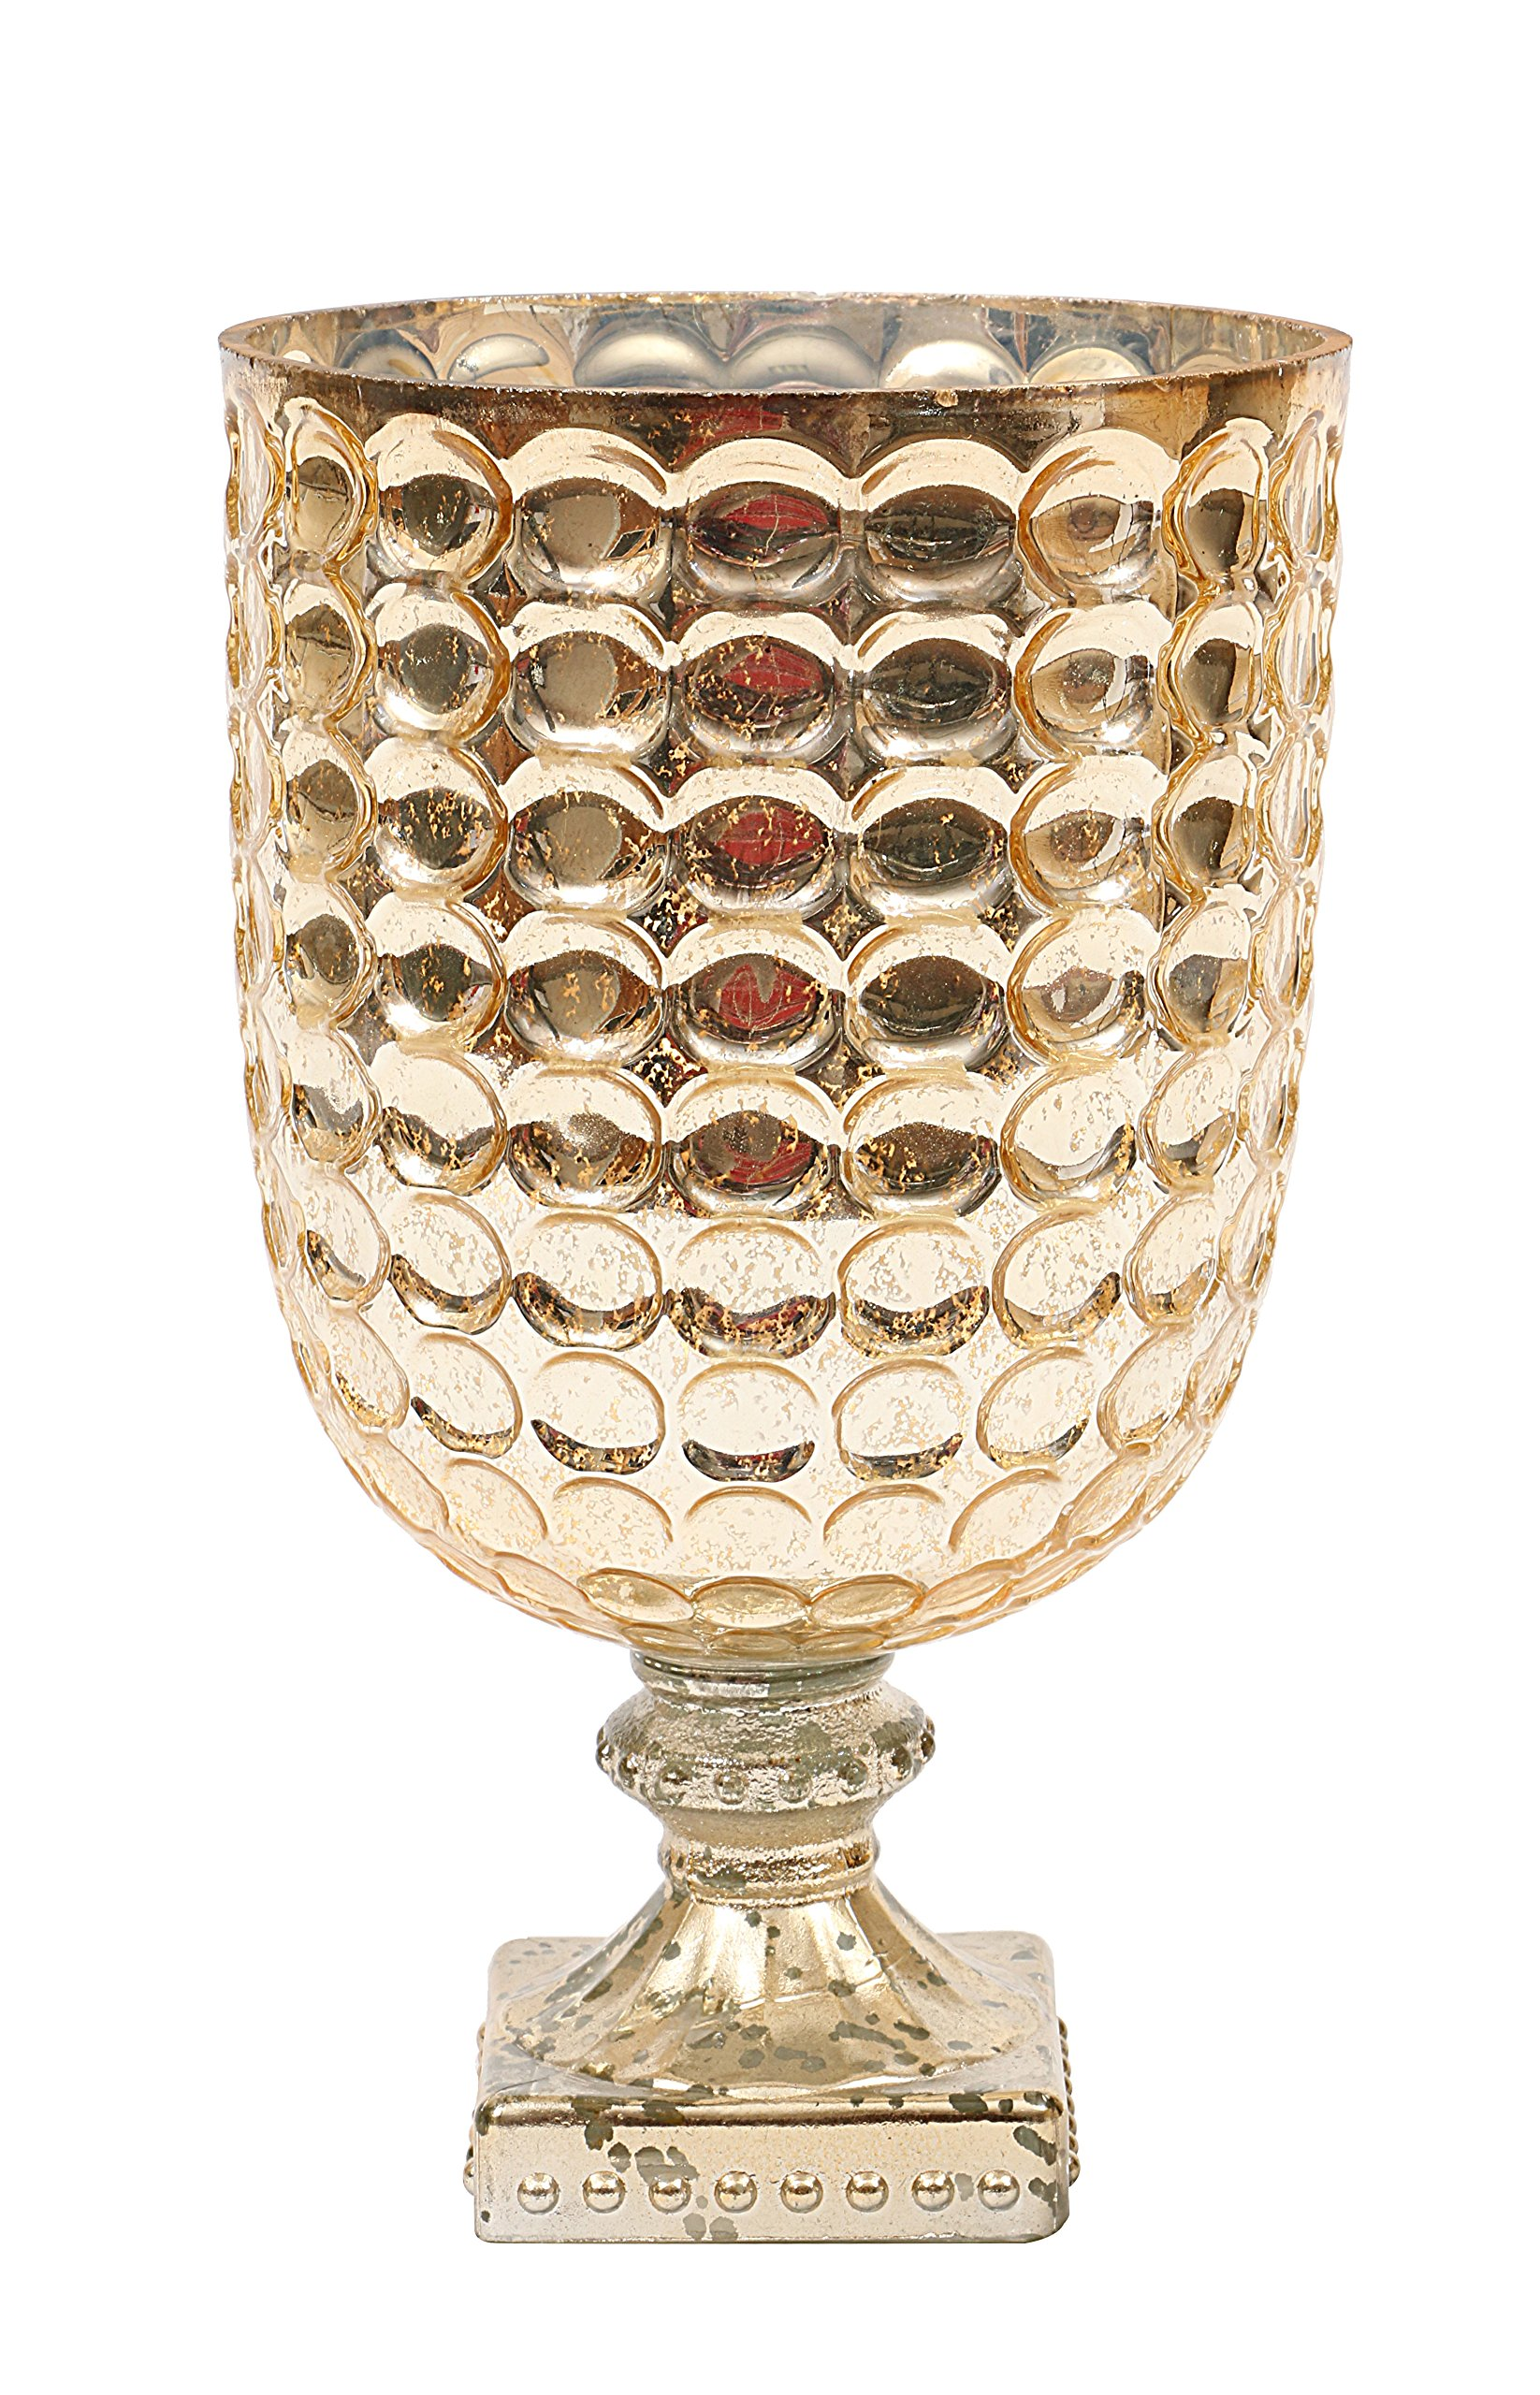 Creative Co-op XC6089 Footed Glass Candle Holder, 6 x 11, Gold by Creative Co-op